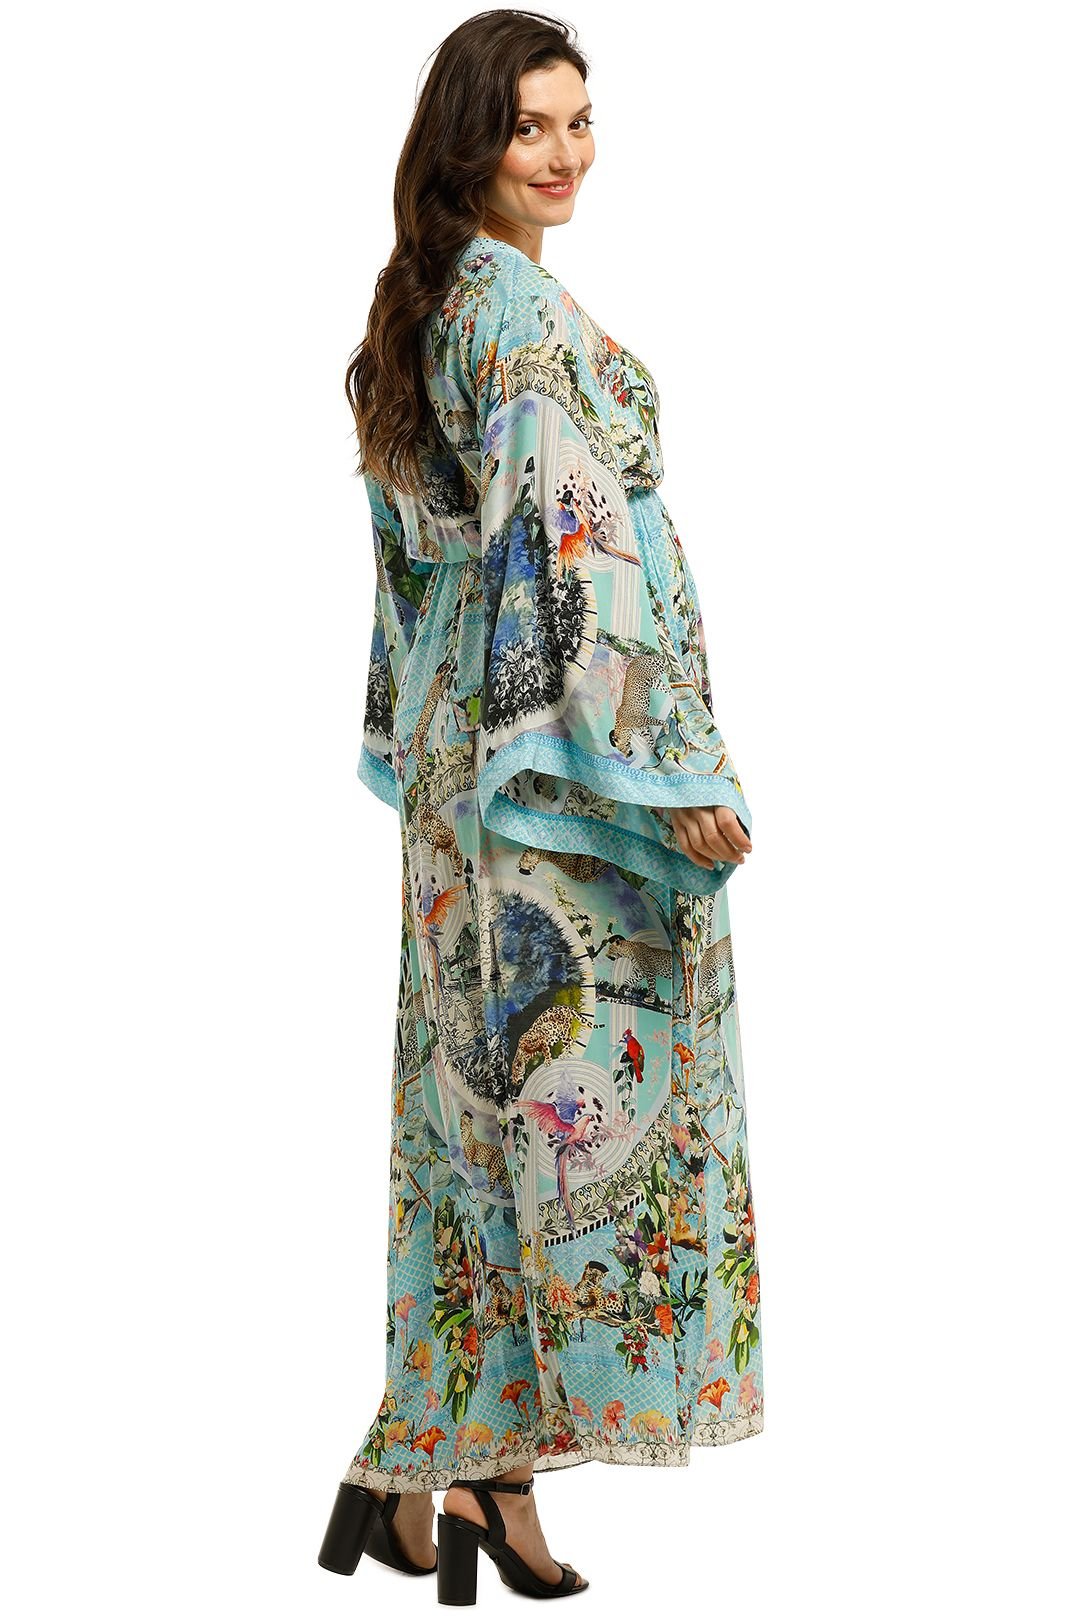 Camilla-Kimono-Wrap-Dress-Girl-from-St-Tropez-Back